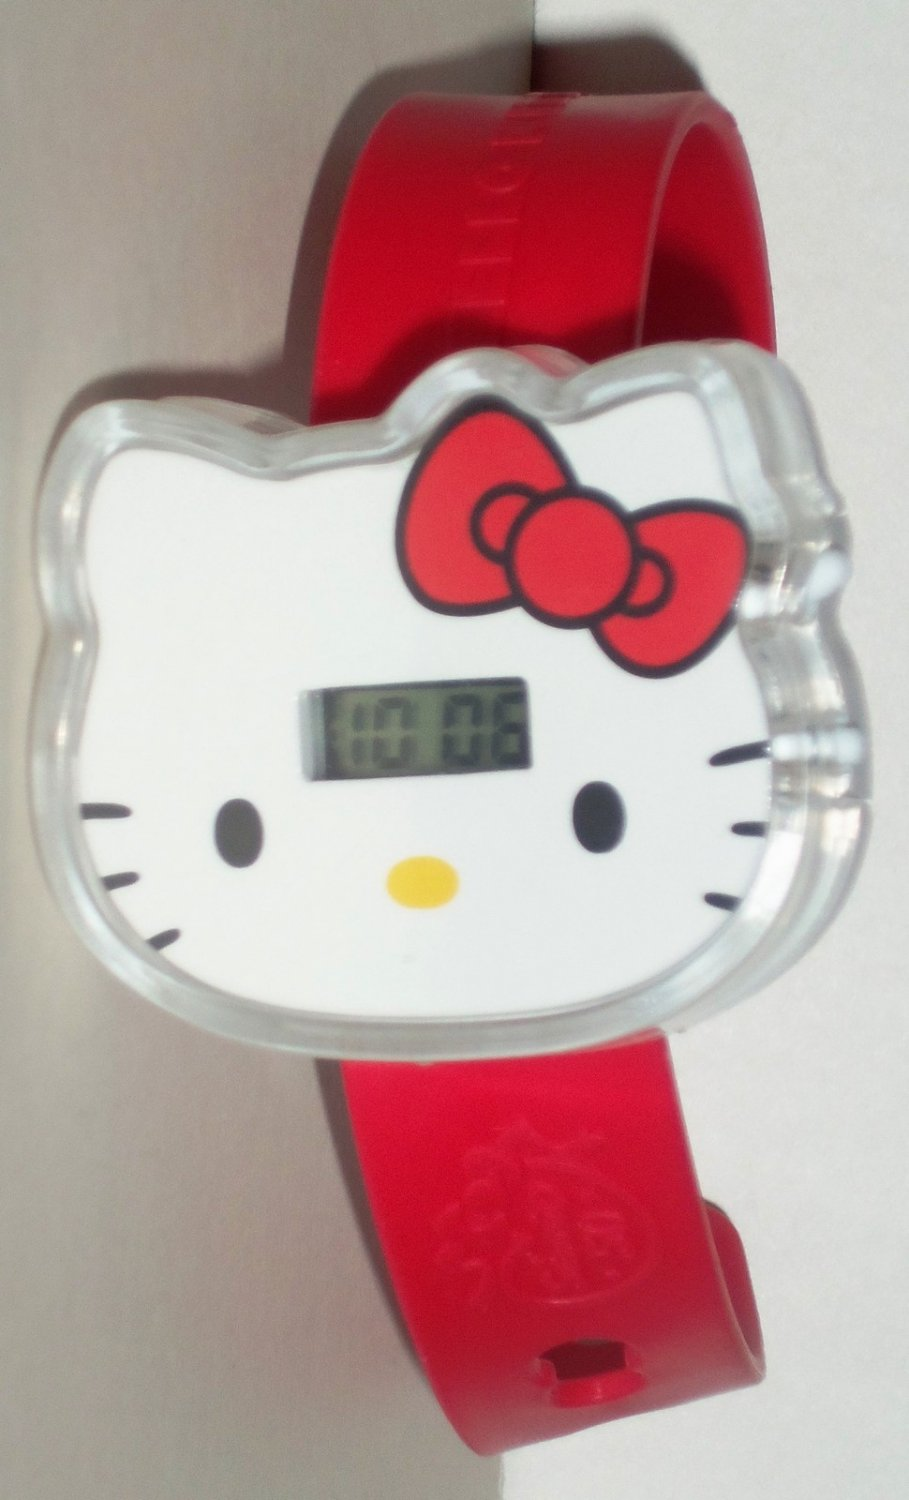 Toy Hello Kitty Watch : Mcdonald s hello kitty watch happy meal toy loose